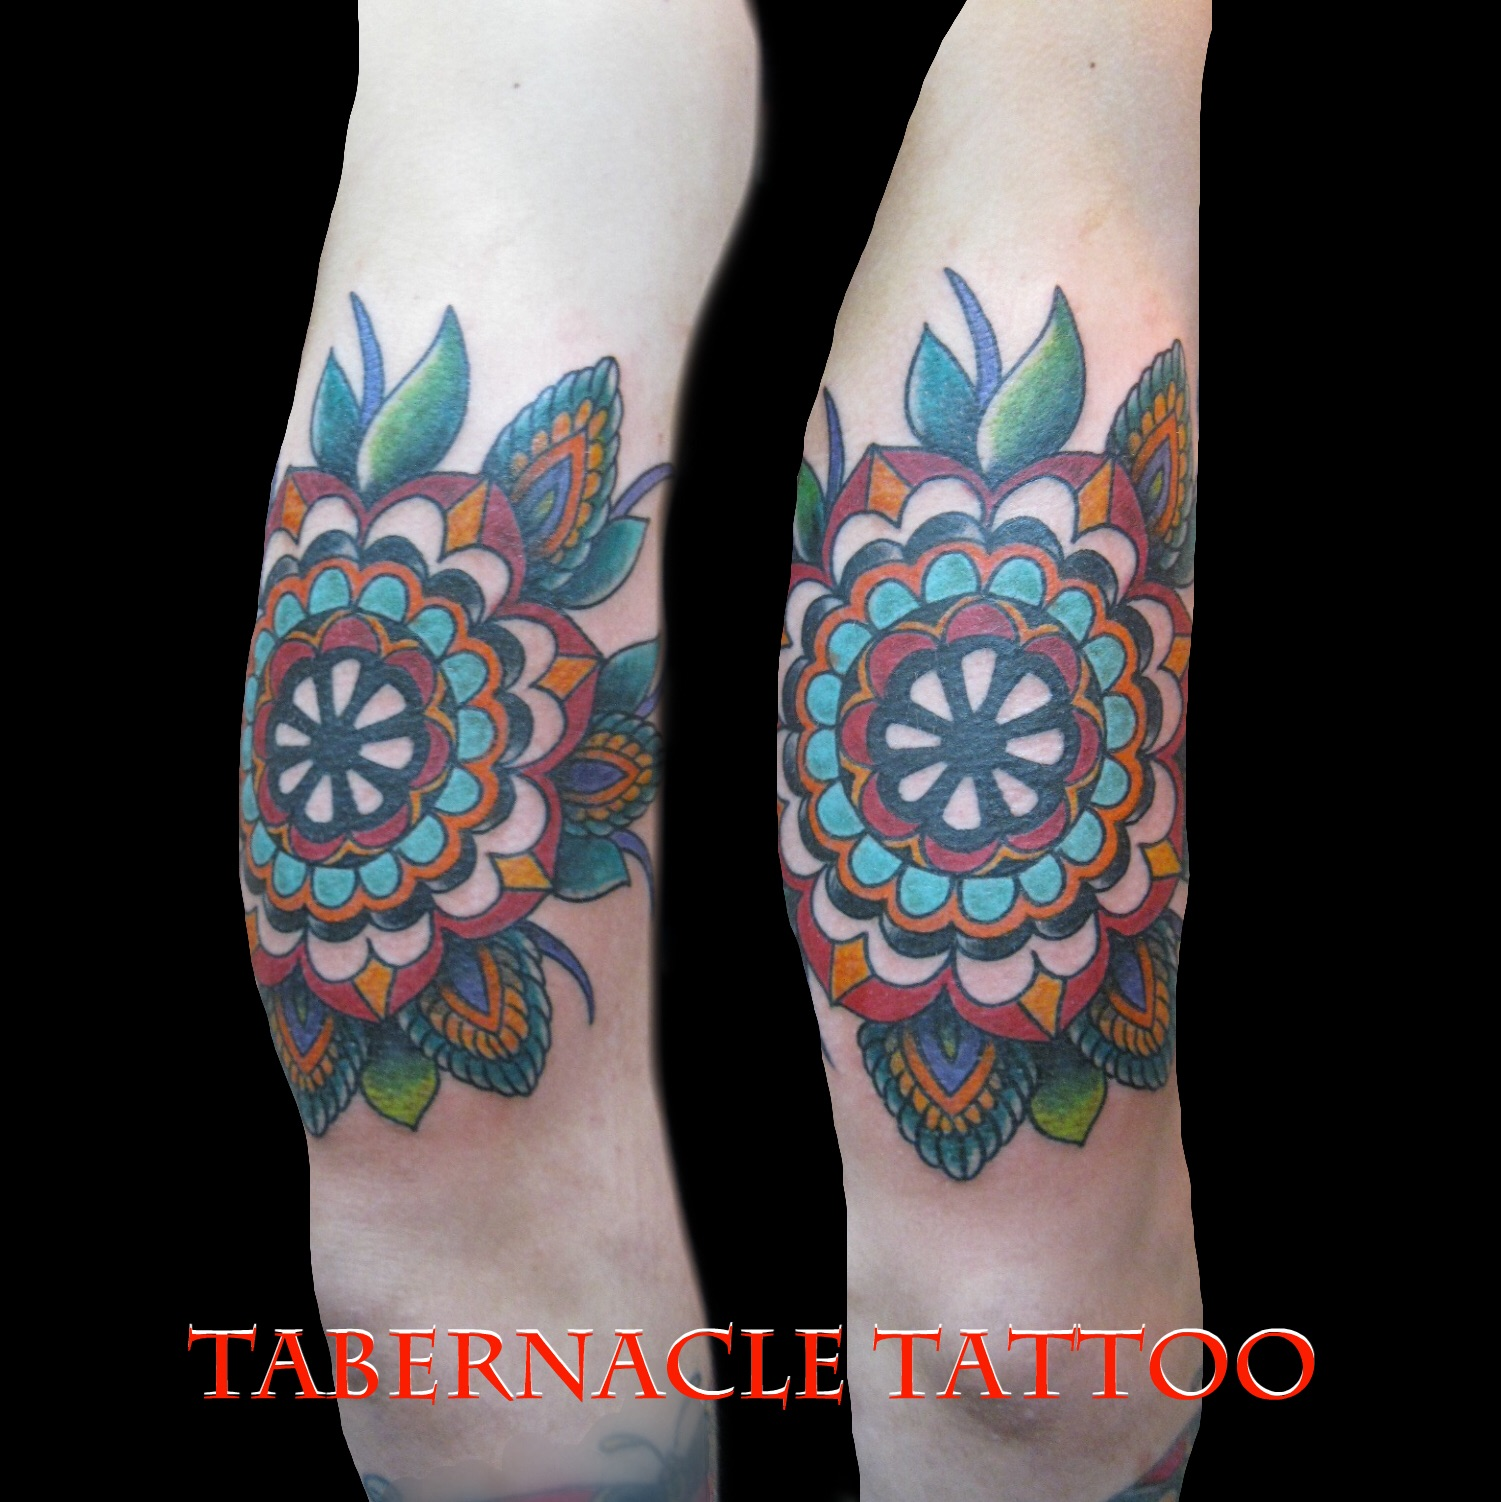 Tattoo places in tampa fl - Cheap vacation packages from ottawa